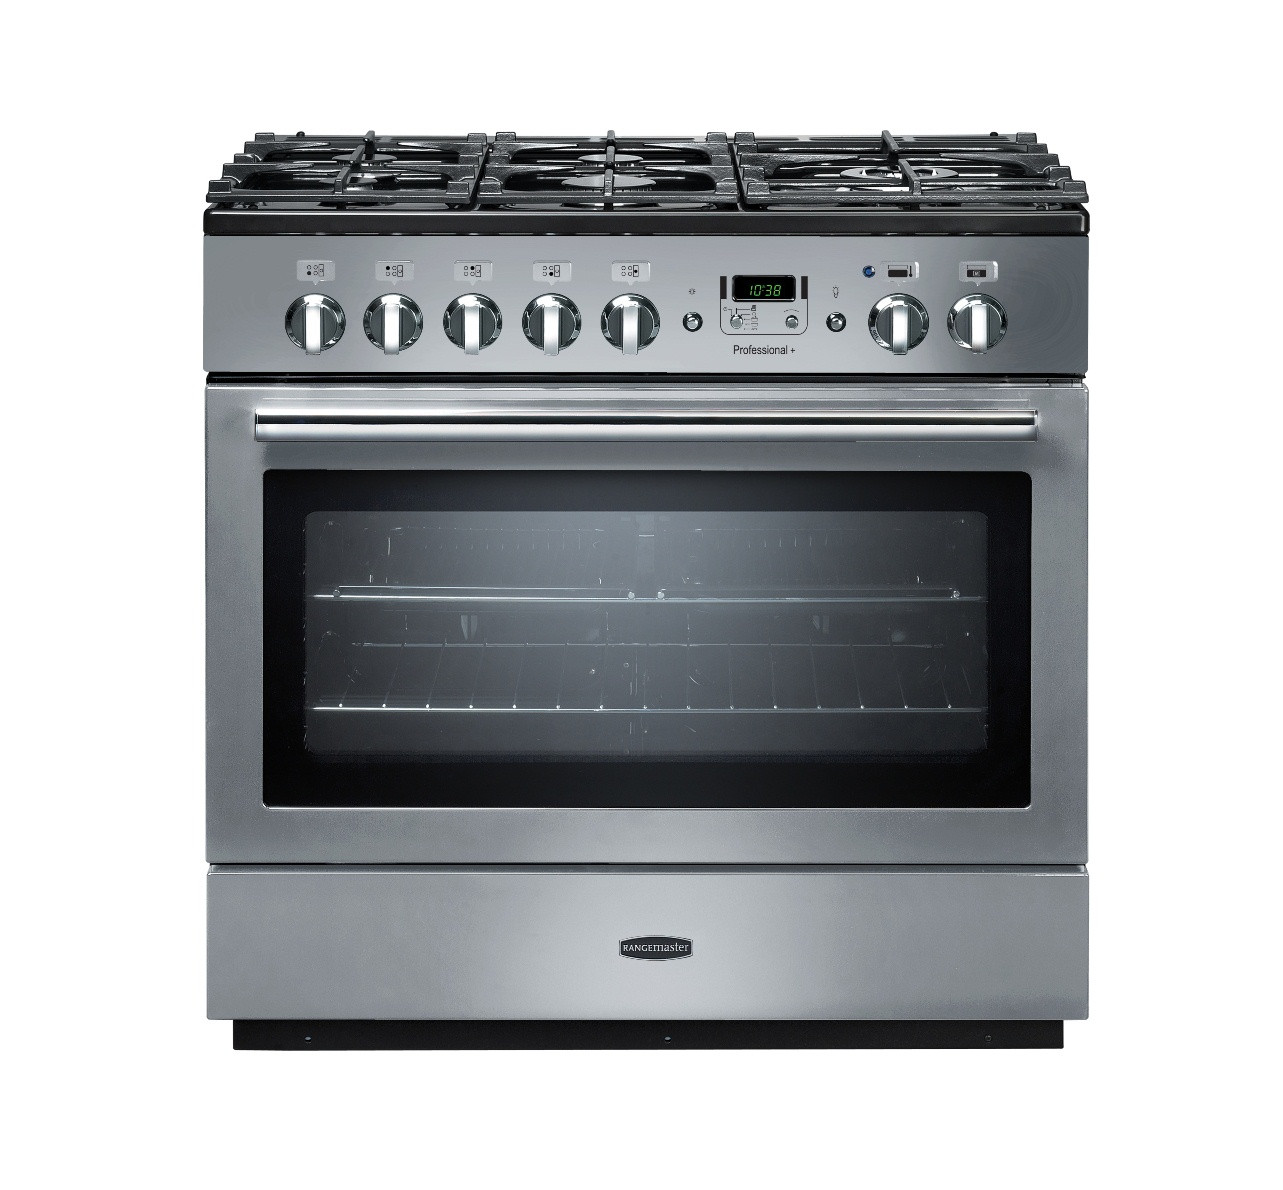 Rangemaster Professional Plus 90 FX Dual Fuel Stainless Steel Range Cooker PROP90FXDFFSS/C 89060